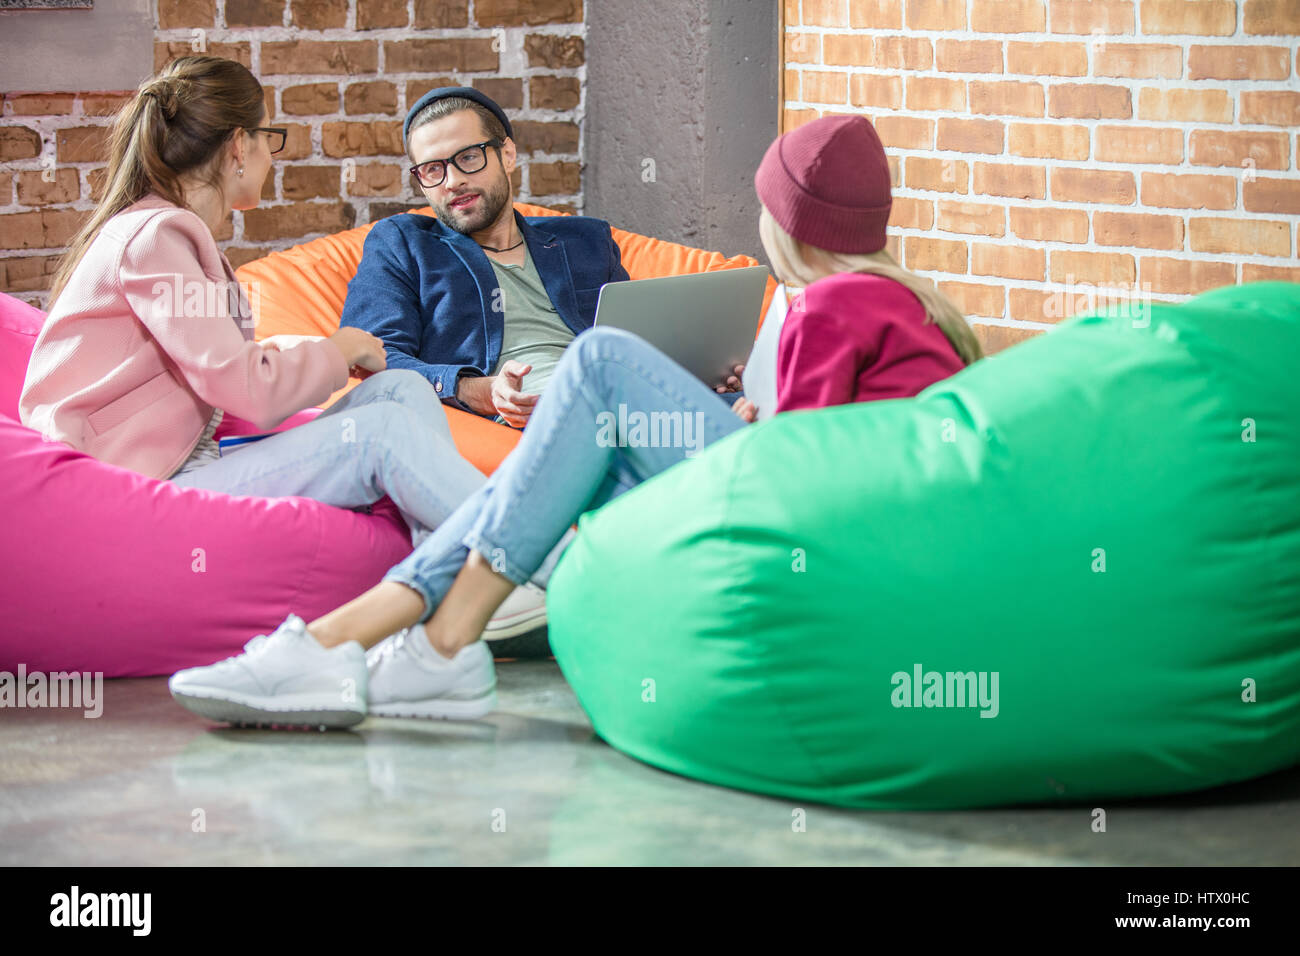 People in bean bag chairs - Stock Image